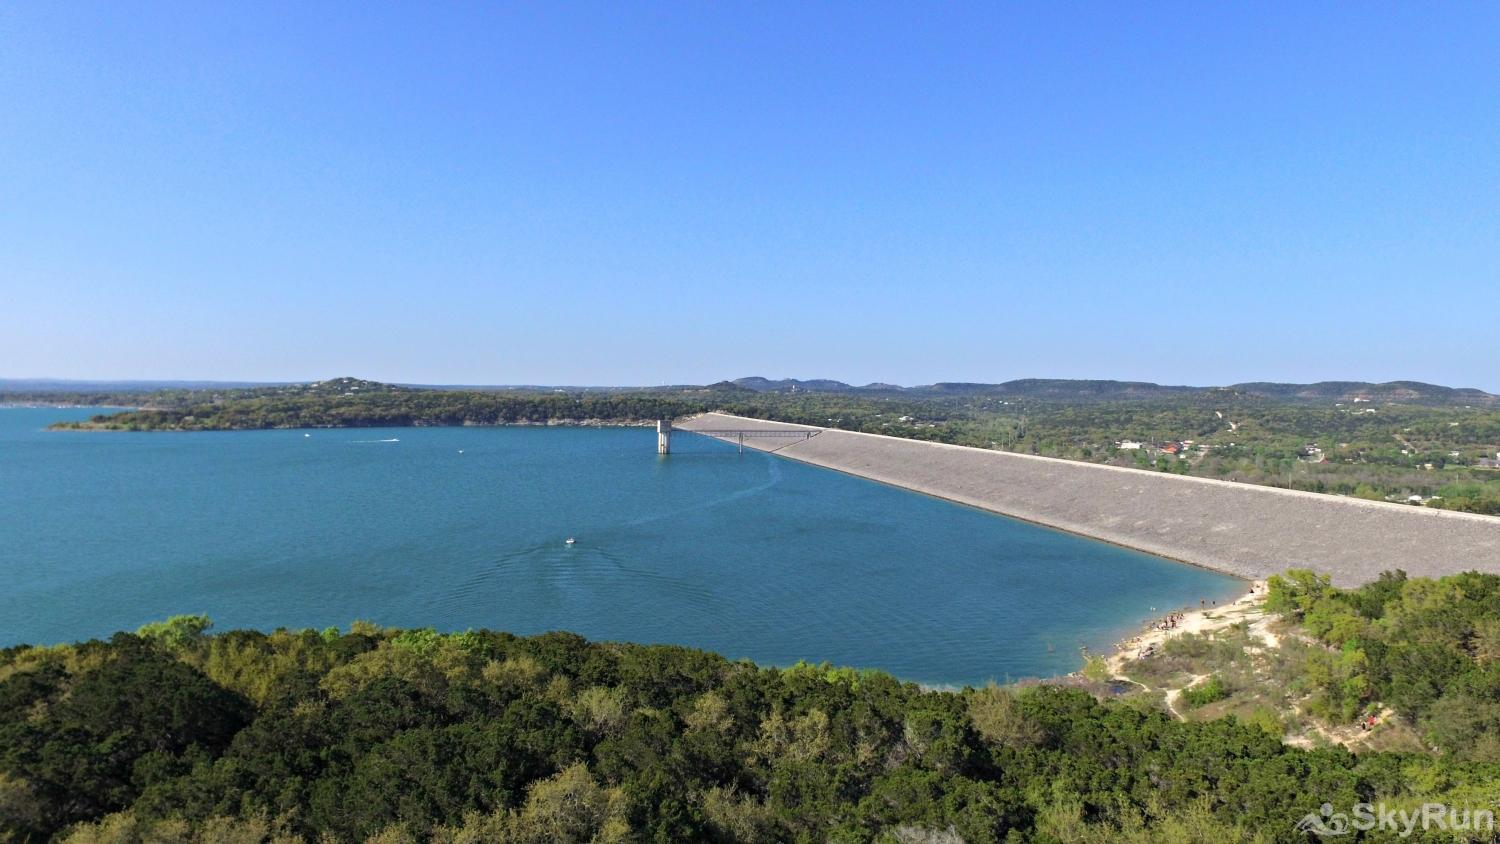 BRAUN RIO Canyon Lake Dam, 4 miles away